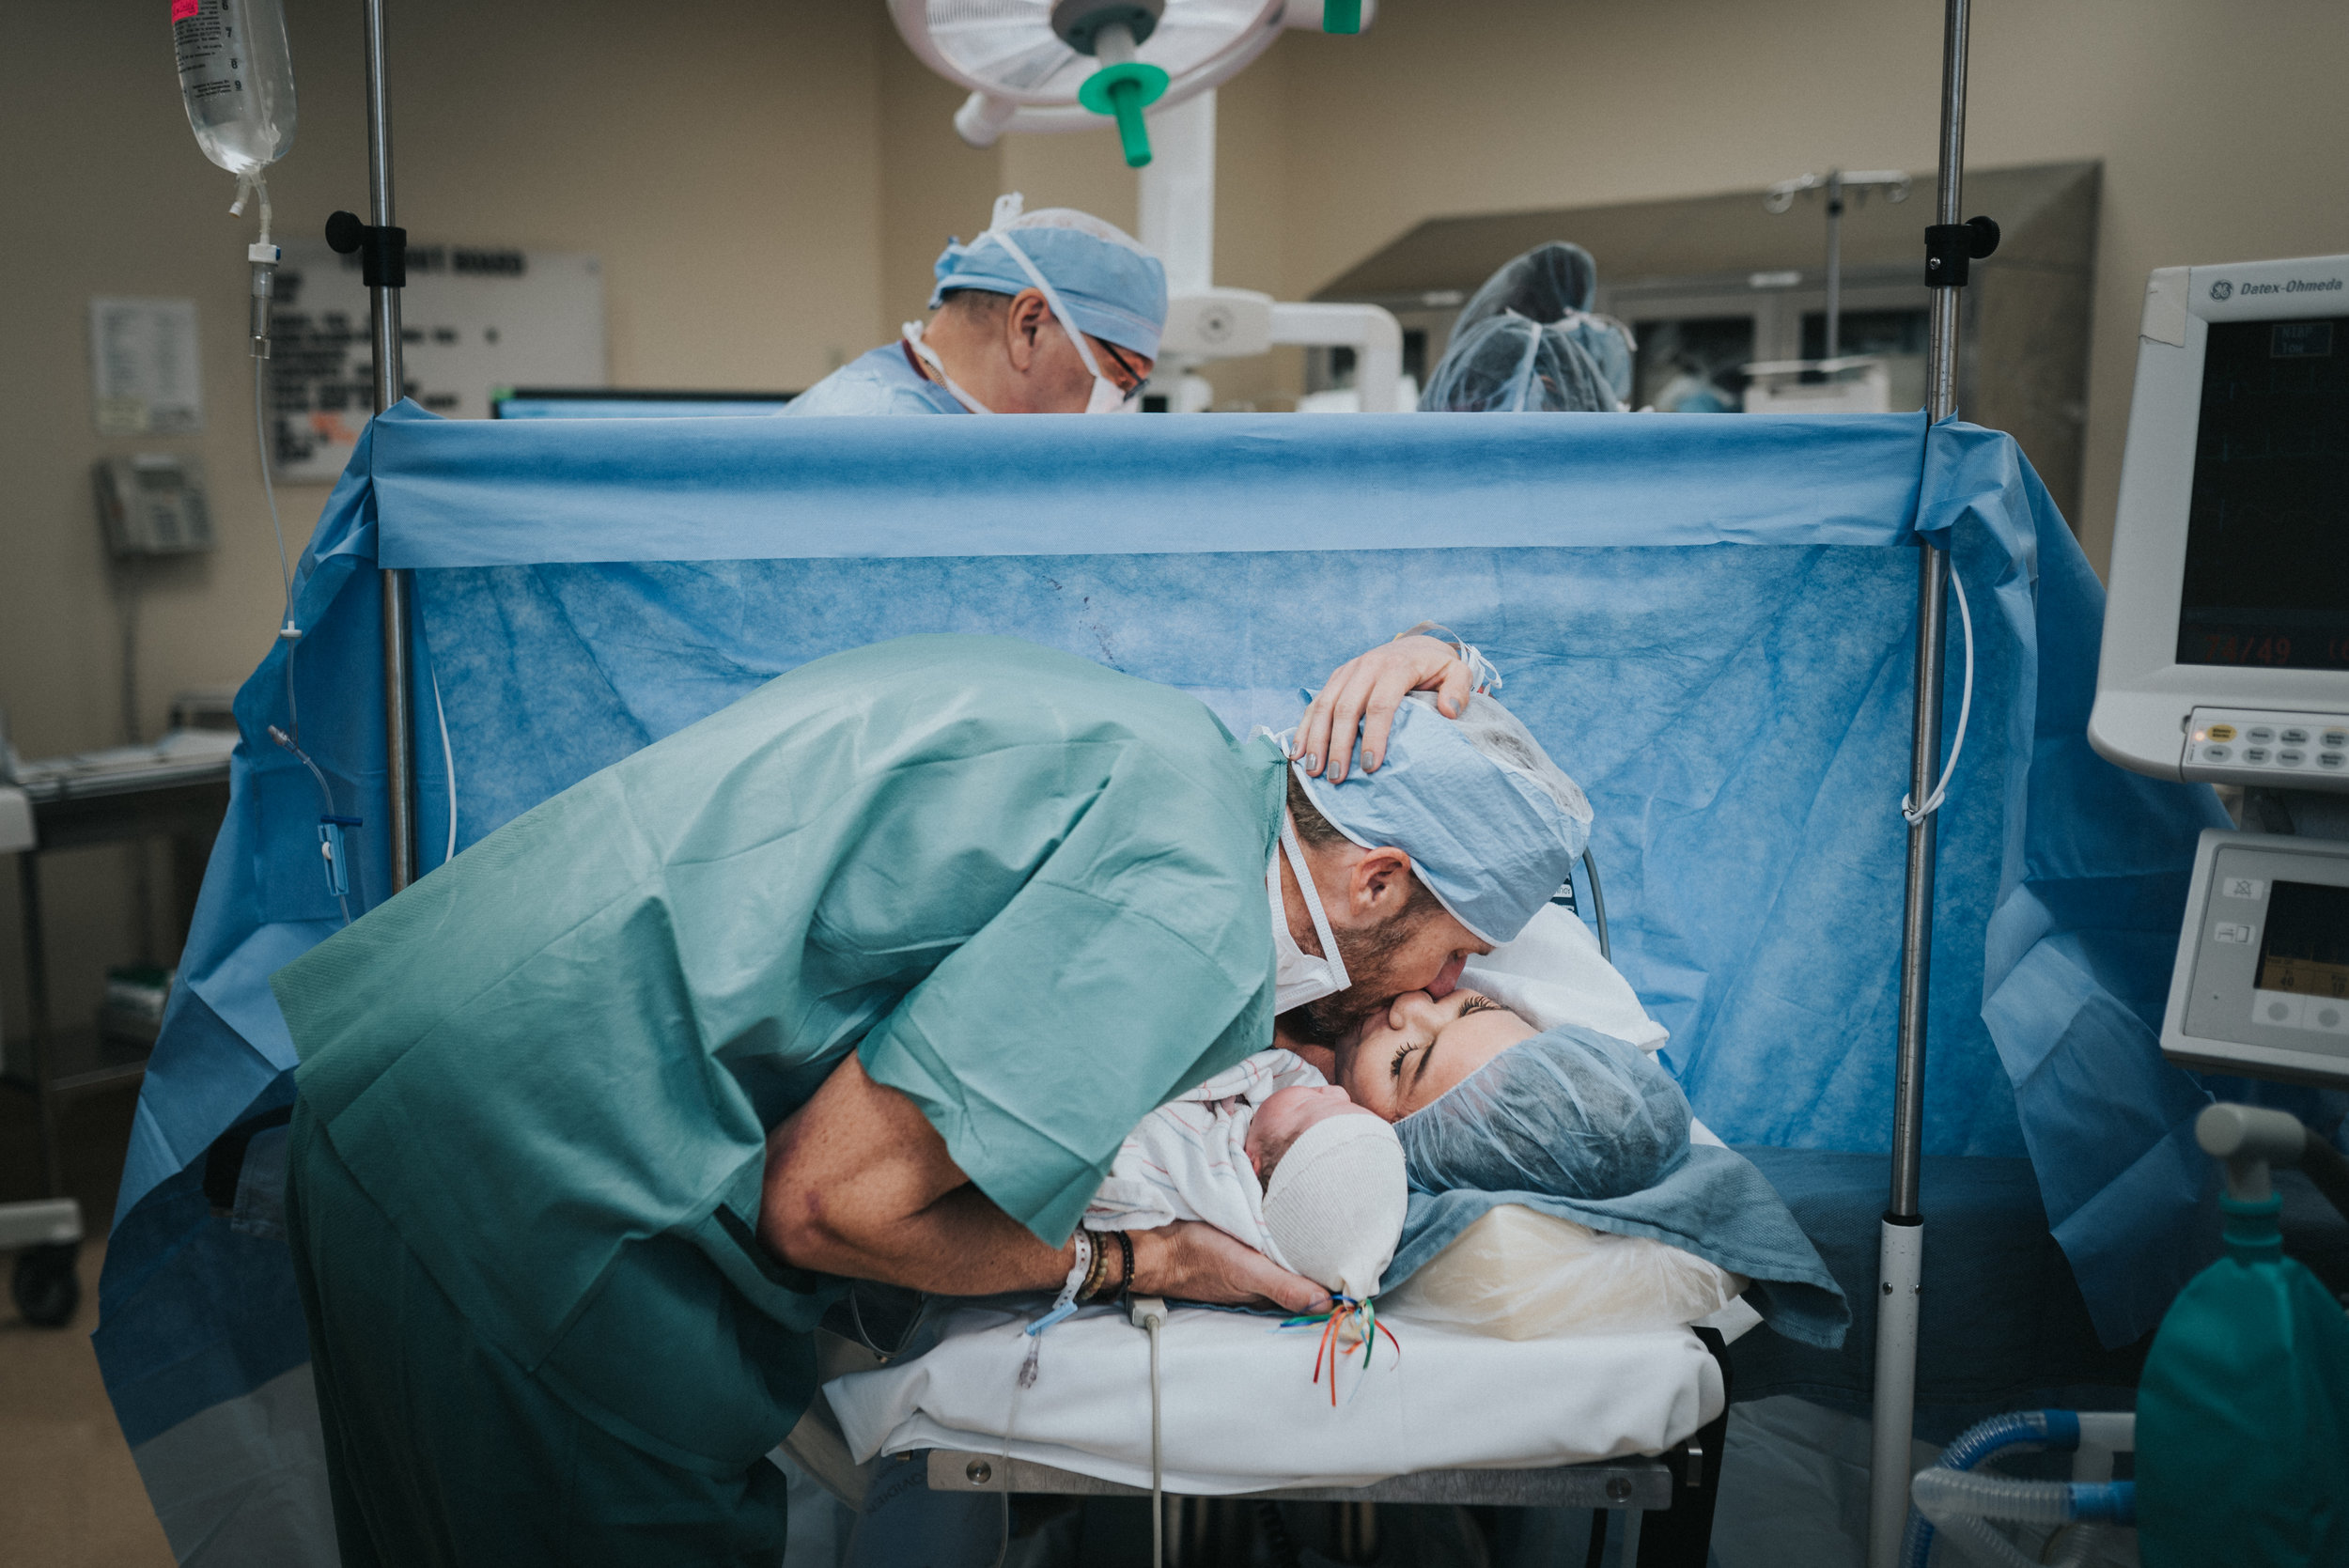 The first kiss between new mother and father after a cesarean at Scottsdale Shea Hospital.